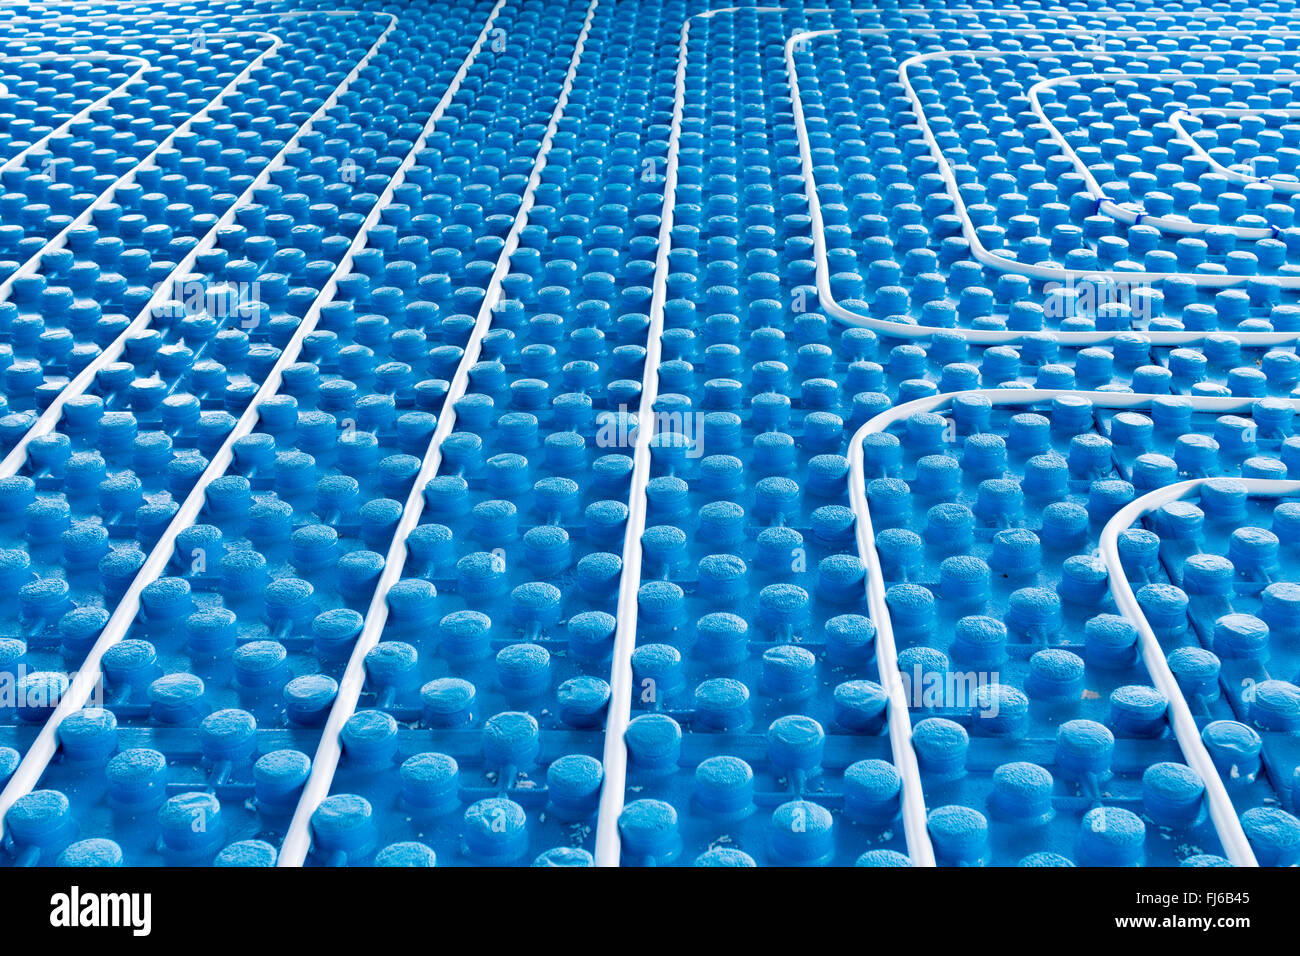 System floor radiant with polyethylene pipes - Stock Image